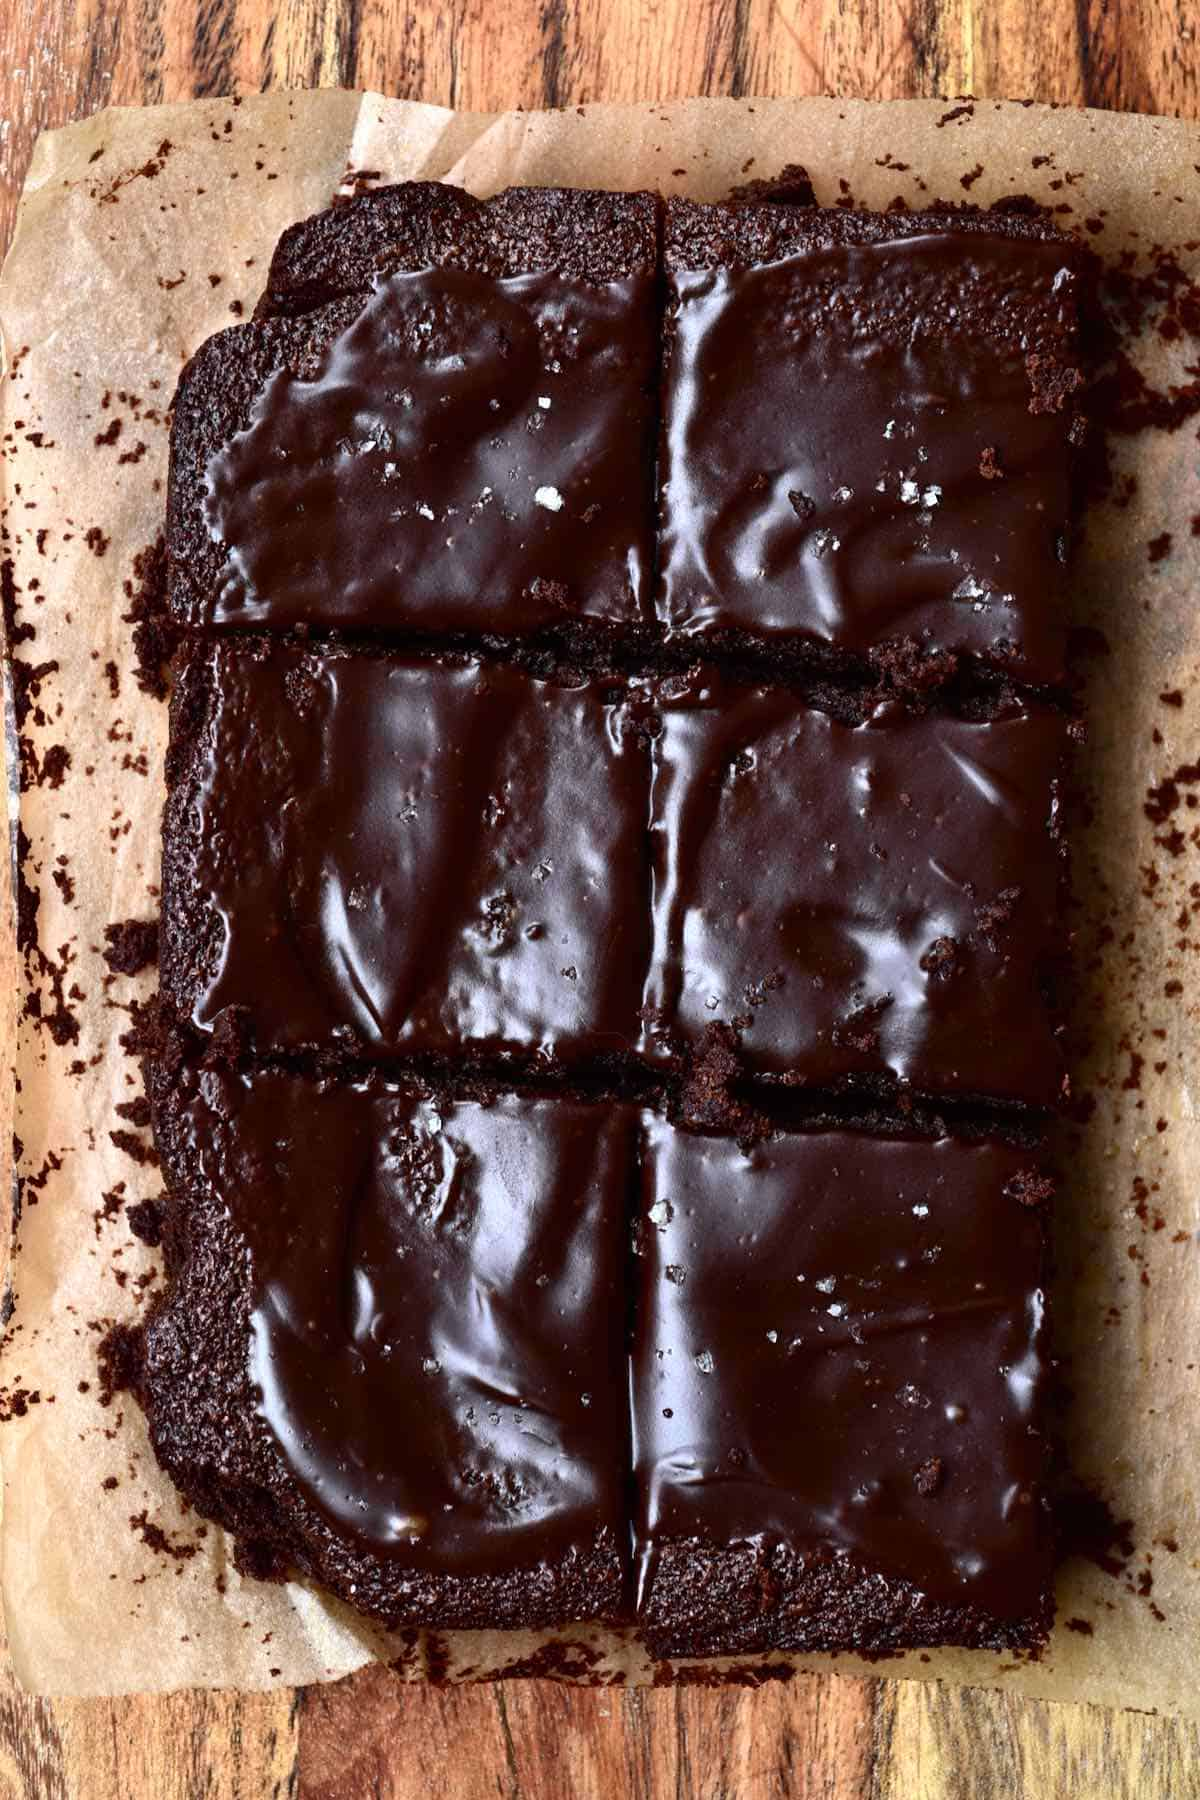 Six squares of brownies